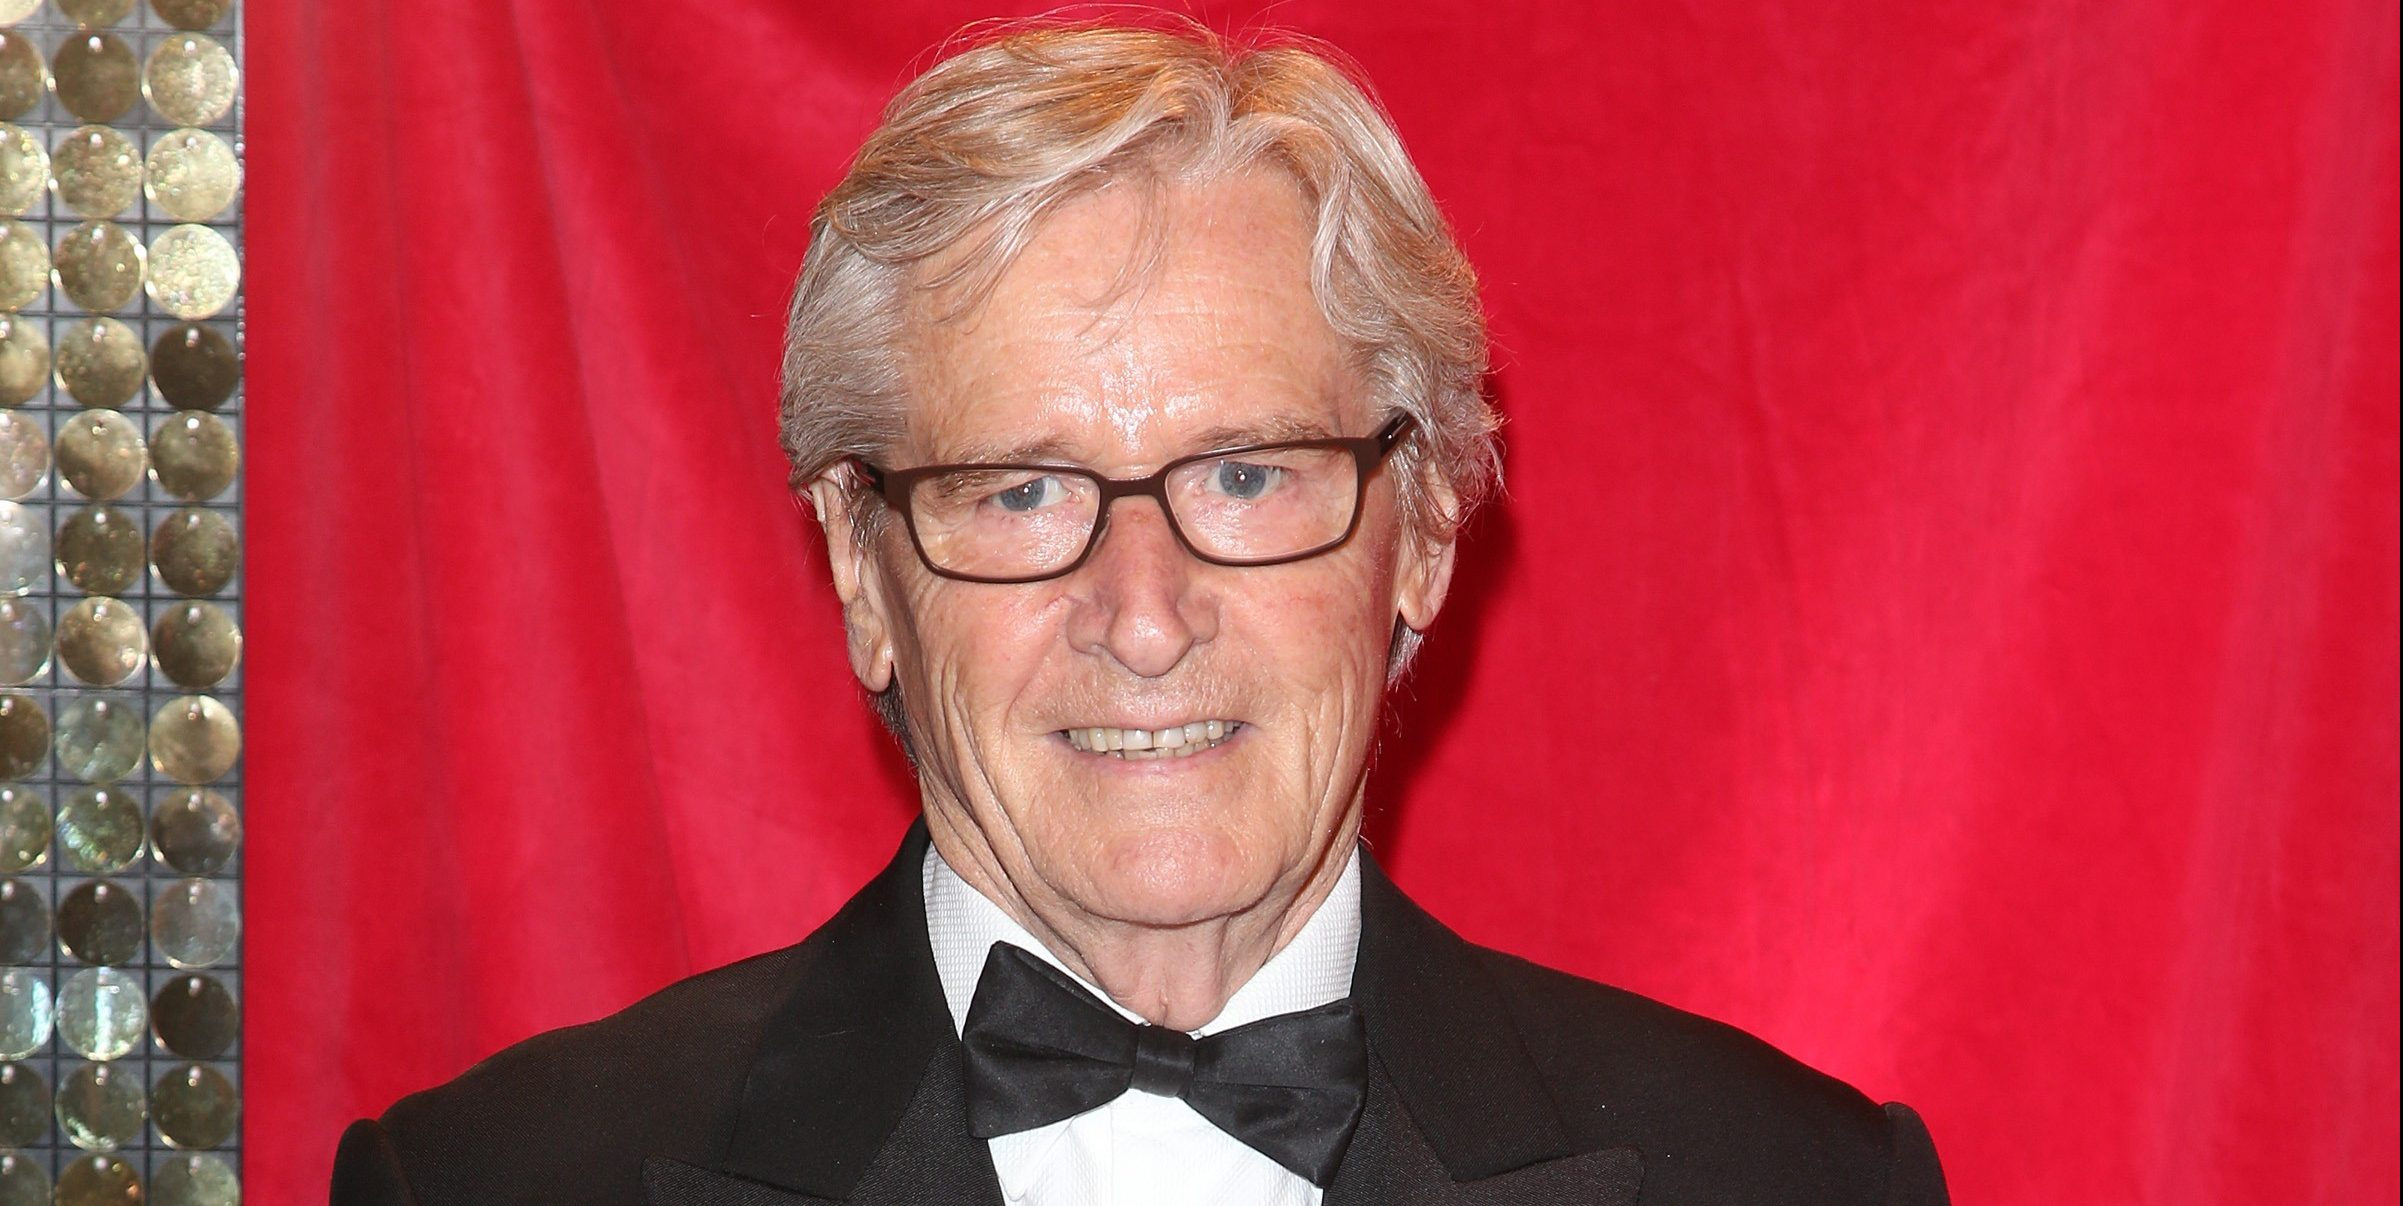 Coronation Street star William Roache 'doesn't like big parties'